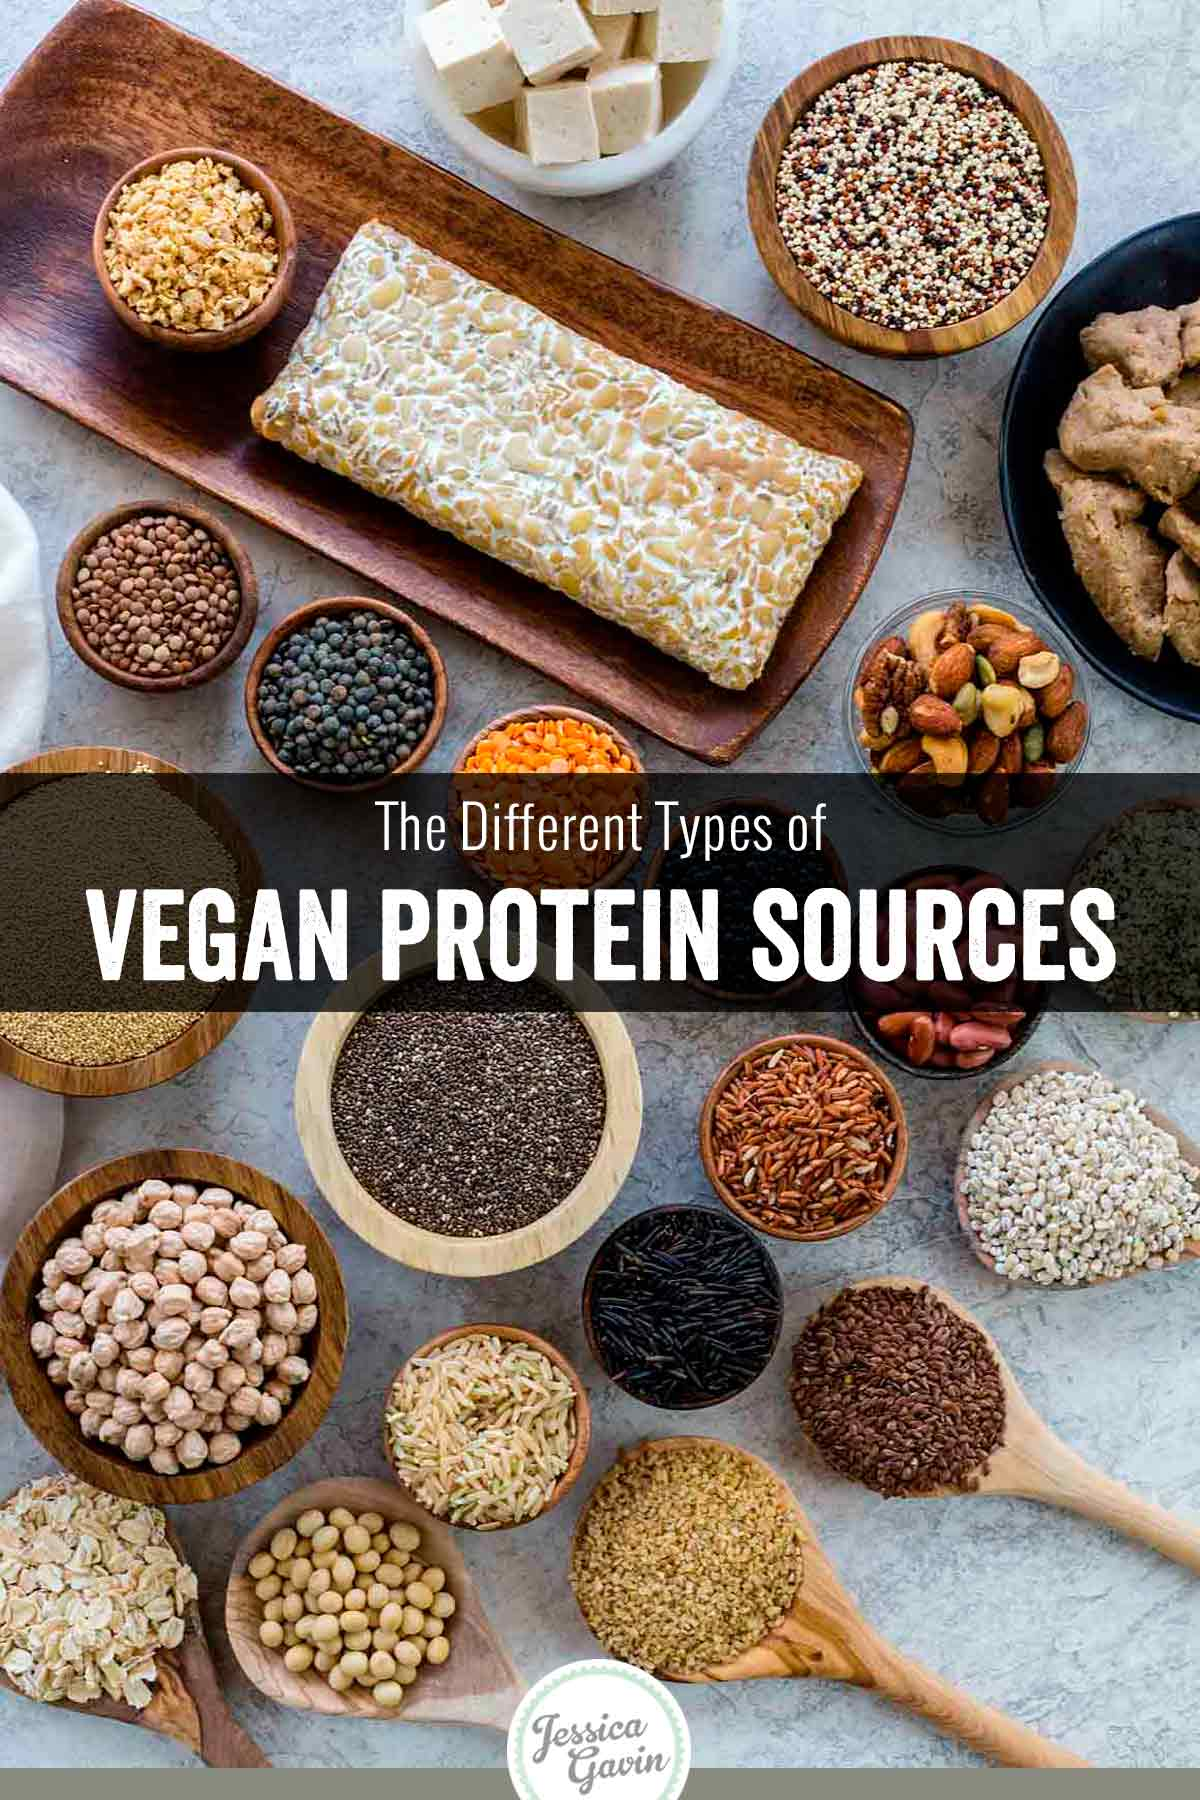 There are a plethora of vegan protein sources available for those following a plant-based diet. Eating a combination of these foods daily can help provide complete protein and keep meals interesting. #vegan #veganprotein